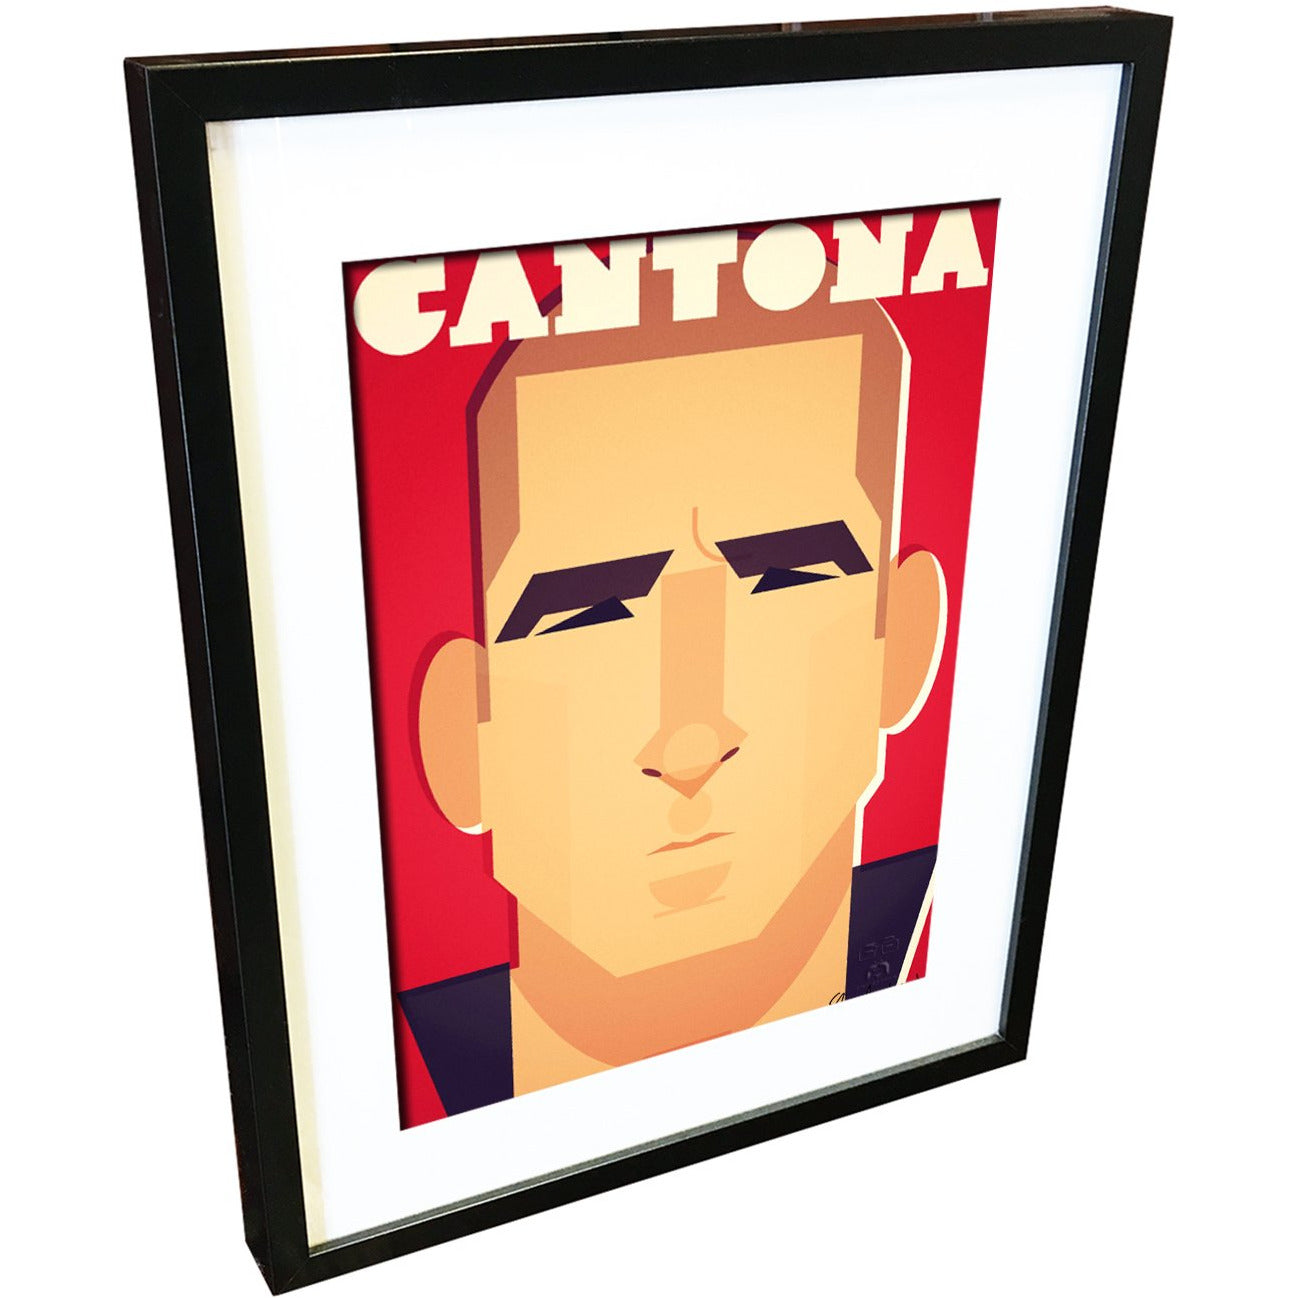 Eric Cantona by Stanley Chow - Signed and stamped fine art print - Egoiste Gallery - Art Gallery in Manchester City Centre